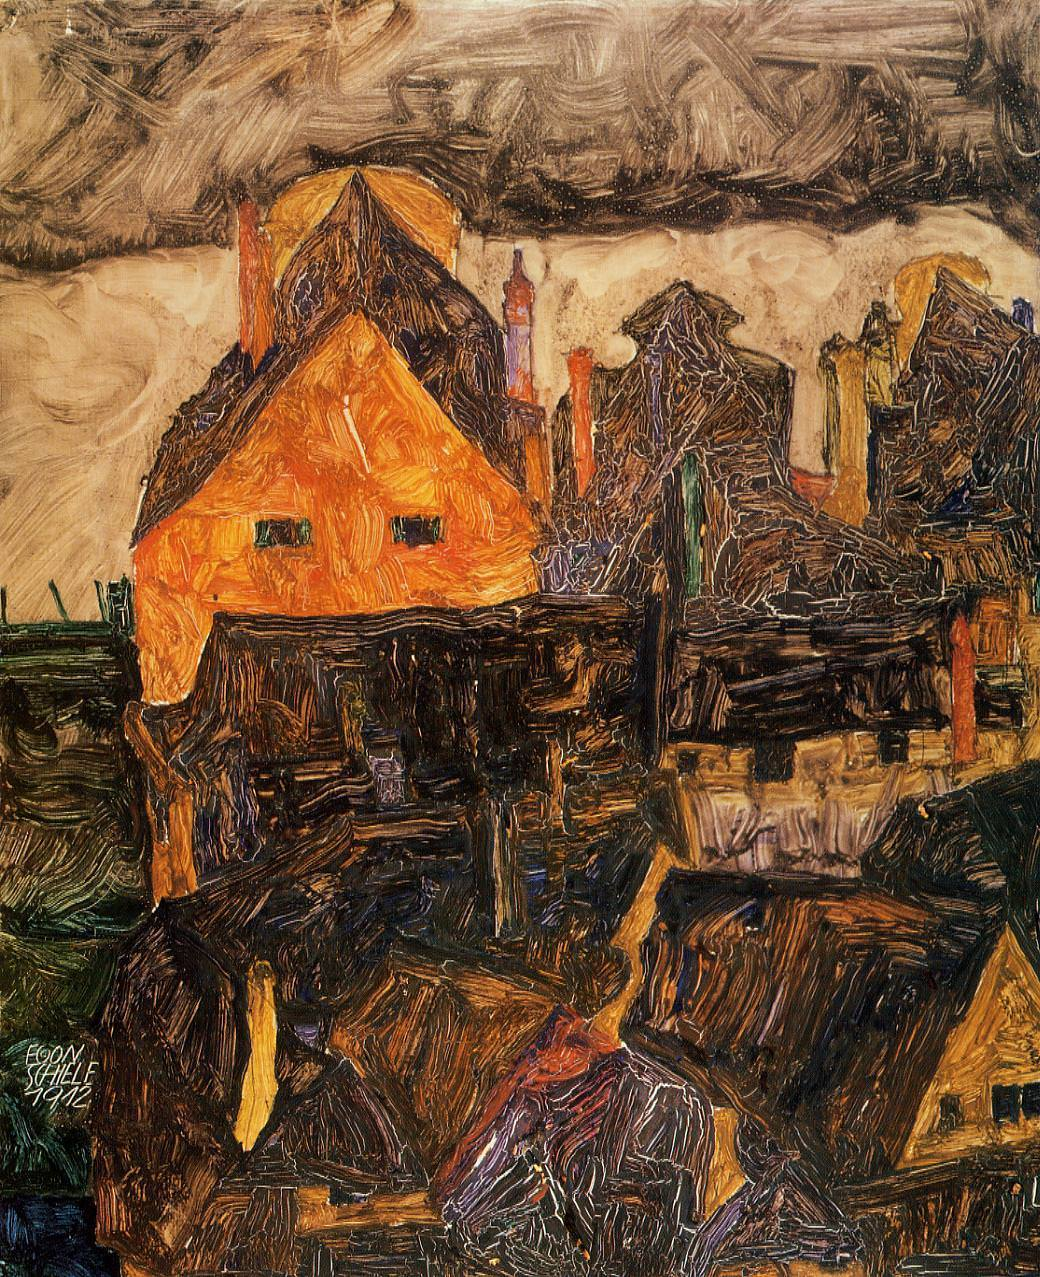 The Old City, 1912 by Egon Schiele